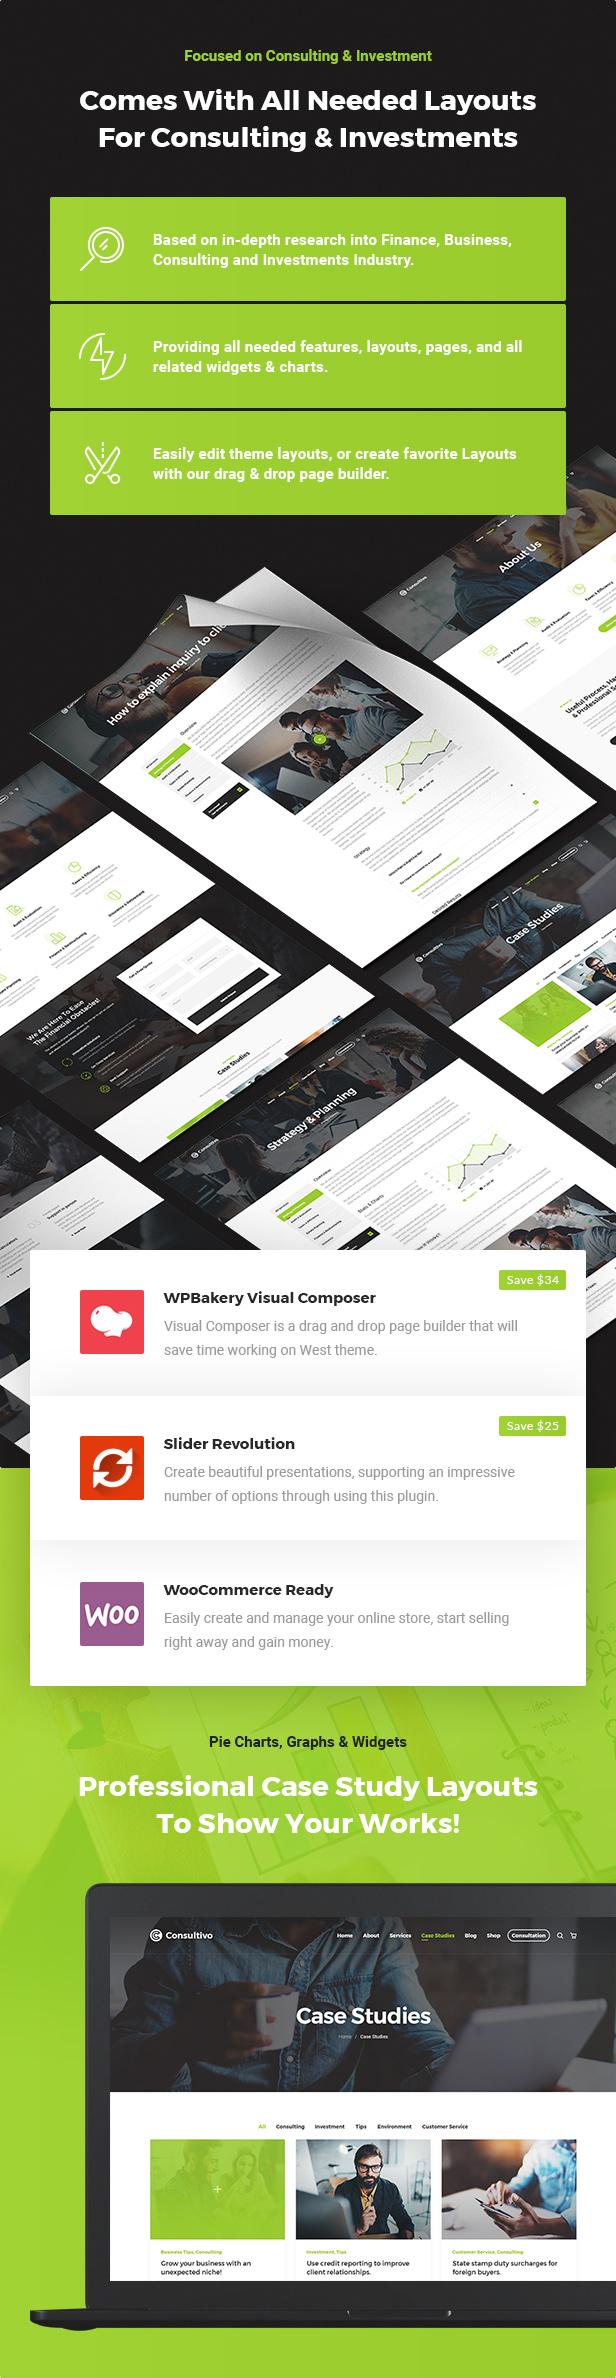 Consultivo - WordPress theme for business and investment consulting - 6